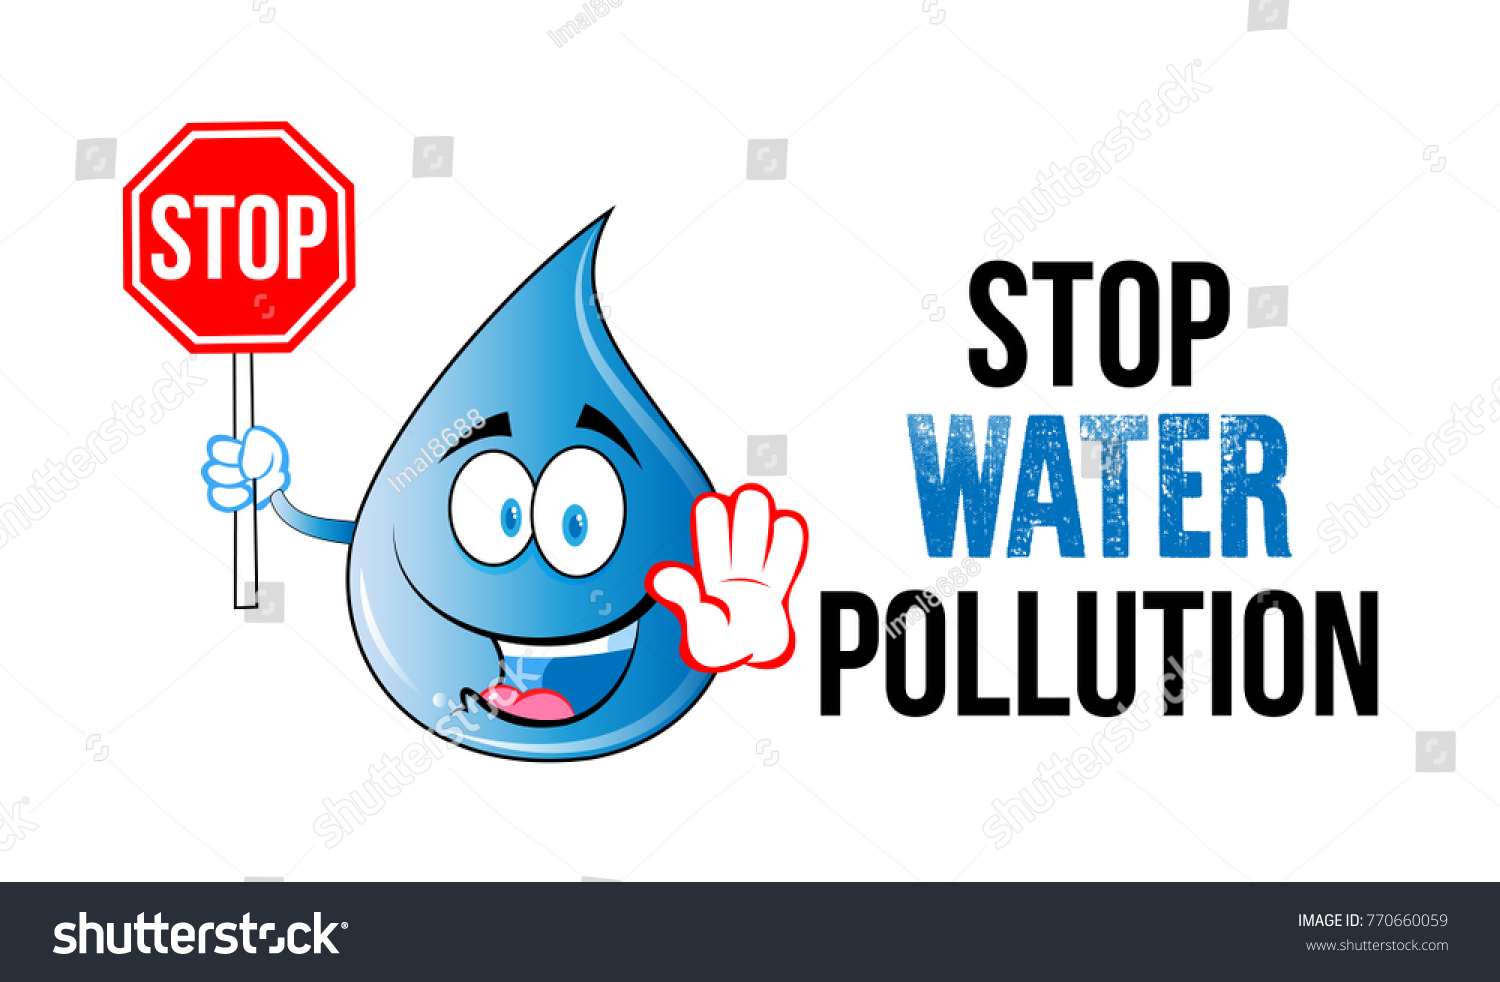 prevent pollution It is only when you take the ways to prevent water pollution seriously that there will be a hope to reduce it be aware of your environment, understand your role in keeping it safe, take into account the consequences of your actions, and ask if it is worth it.